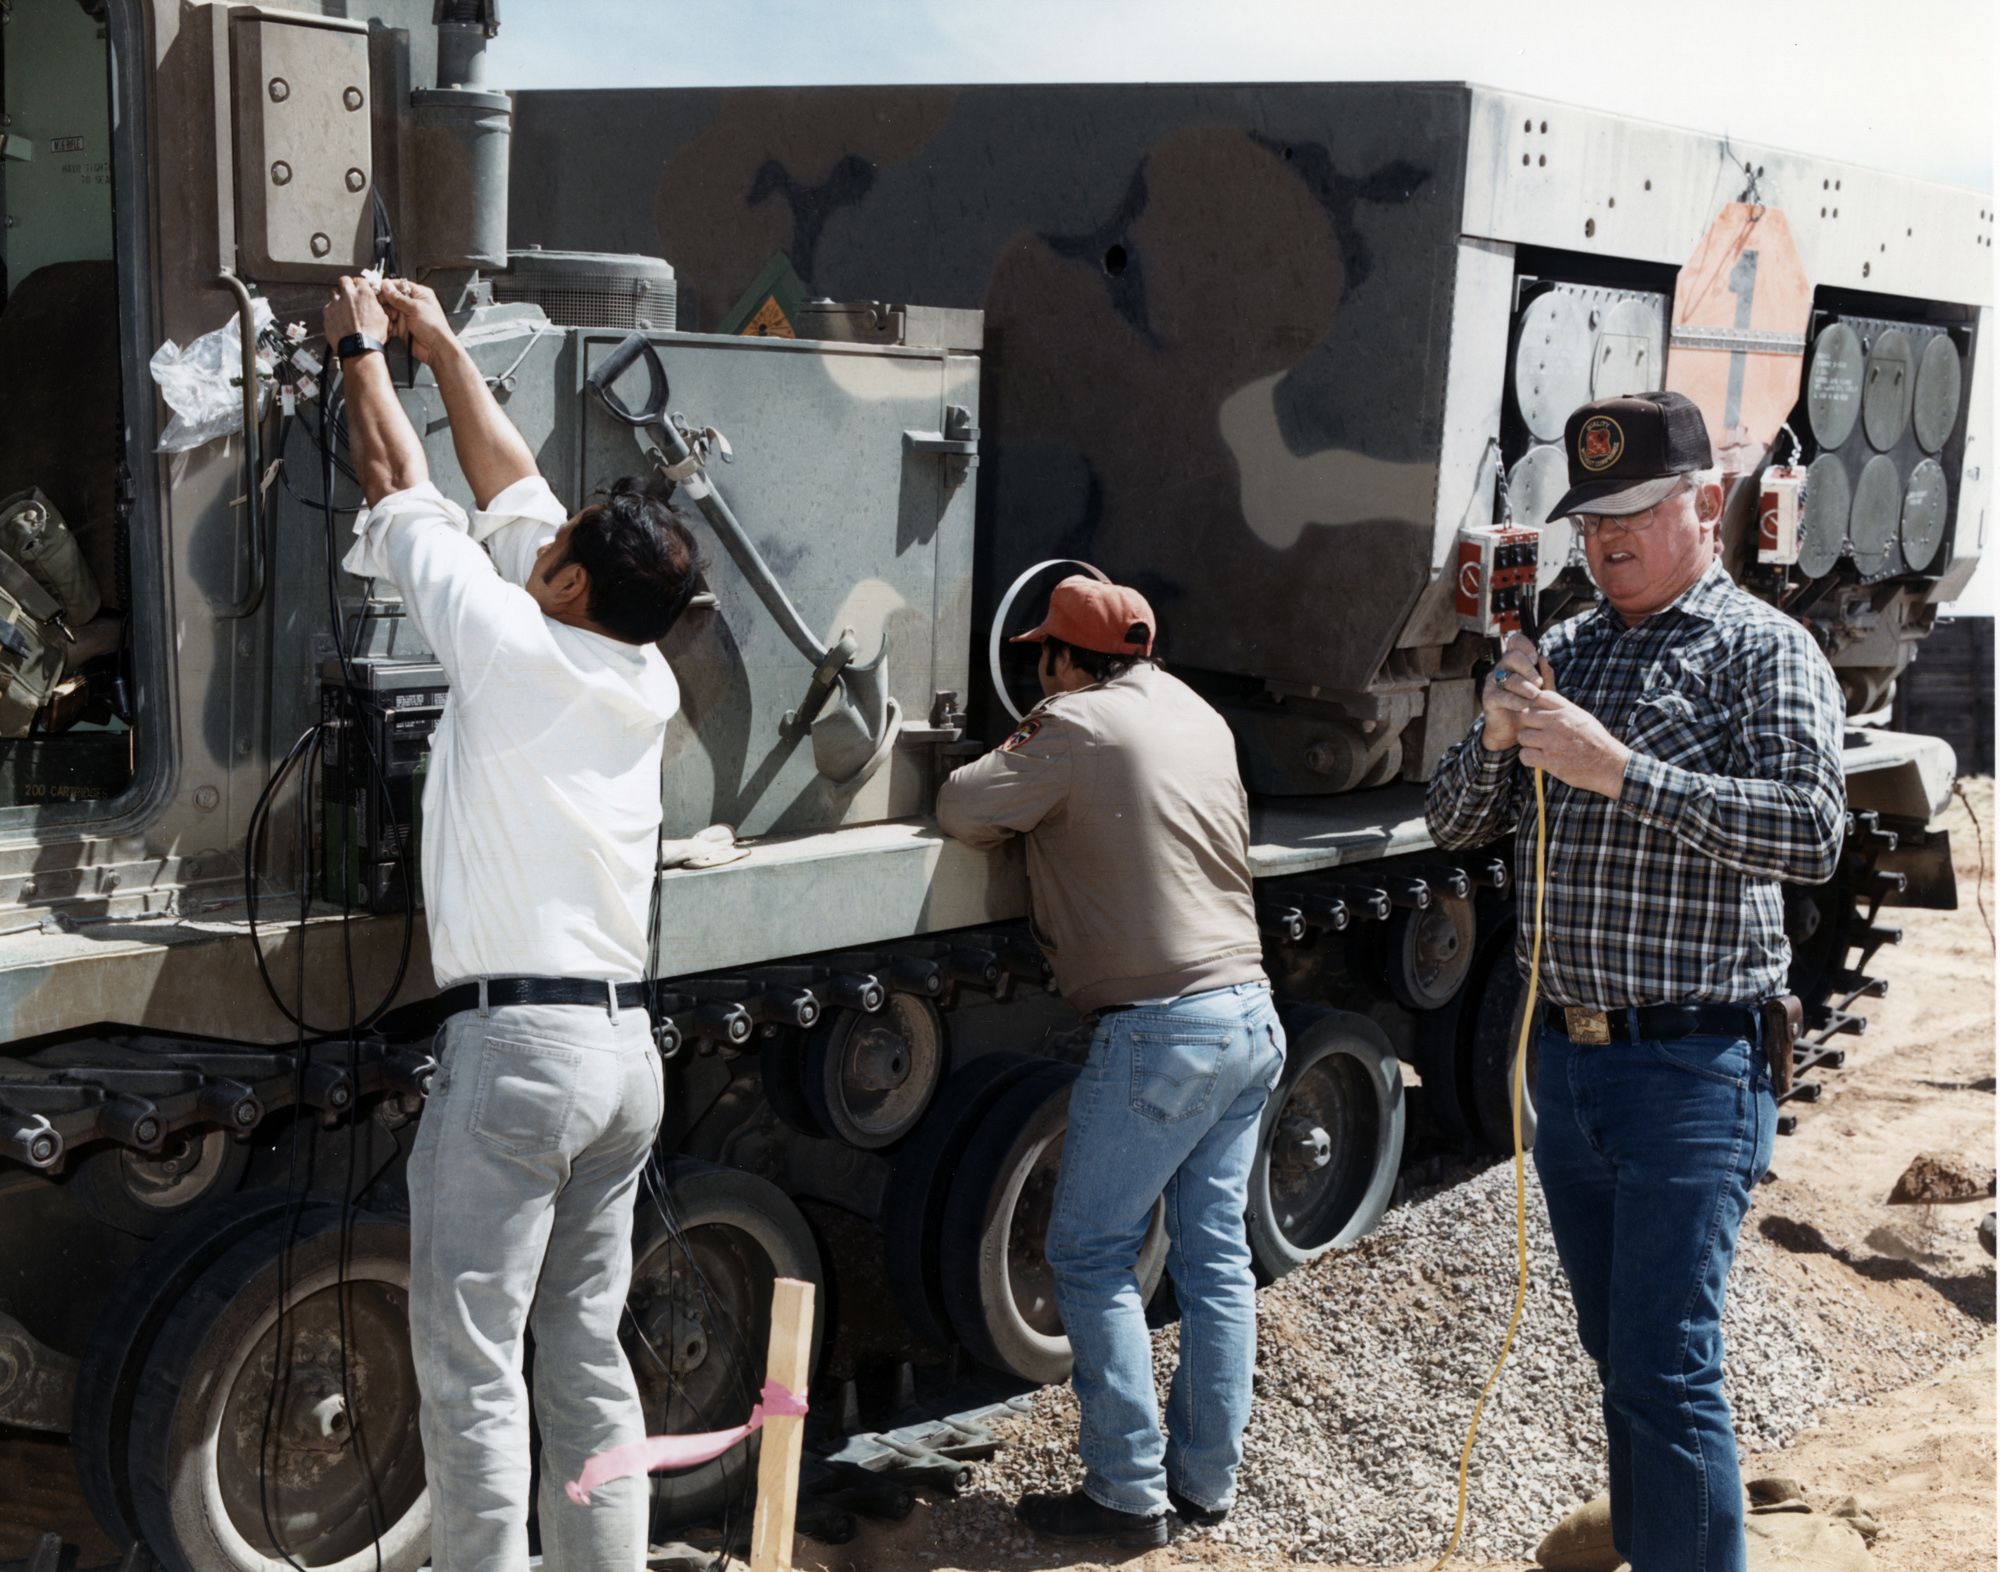 Contractor support personnel from SAIC install instrumentation and wiring on a Multiple Launch Rocket System launcher, the vehicular platform for the ATACMS, at White Sands Missile Range in March 1990. There were nine of the platforms to be used during the system's IOT&E. Instrumentation delayed the start of testing because of concerns about uncertified hardware being placed on the system. Lesson learned: Instrumentation was the single most important consideration that the Block I ATACMS program had neglected in development. PMs must plan for it well in advance to prevent testing delays. (Photo by Kenneth G. Schoultz)